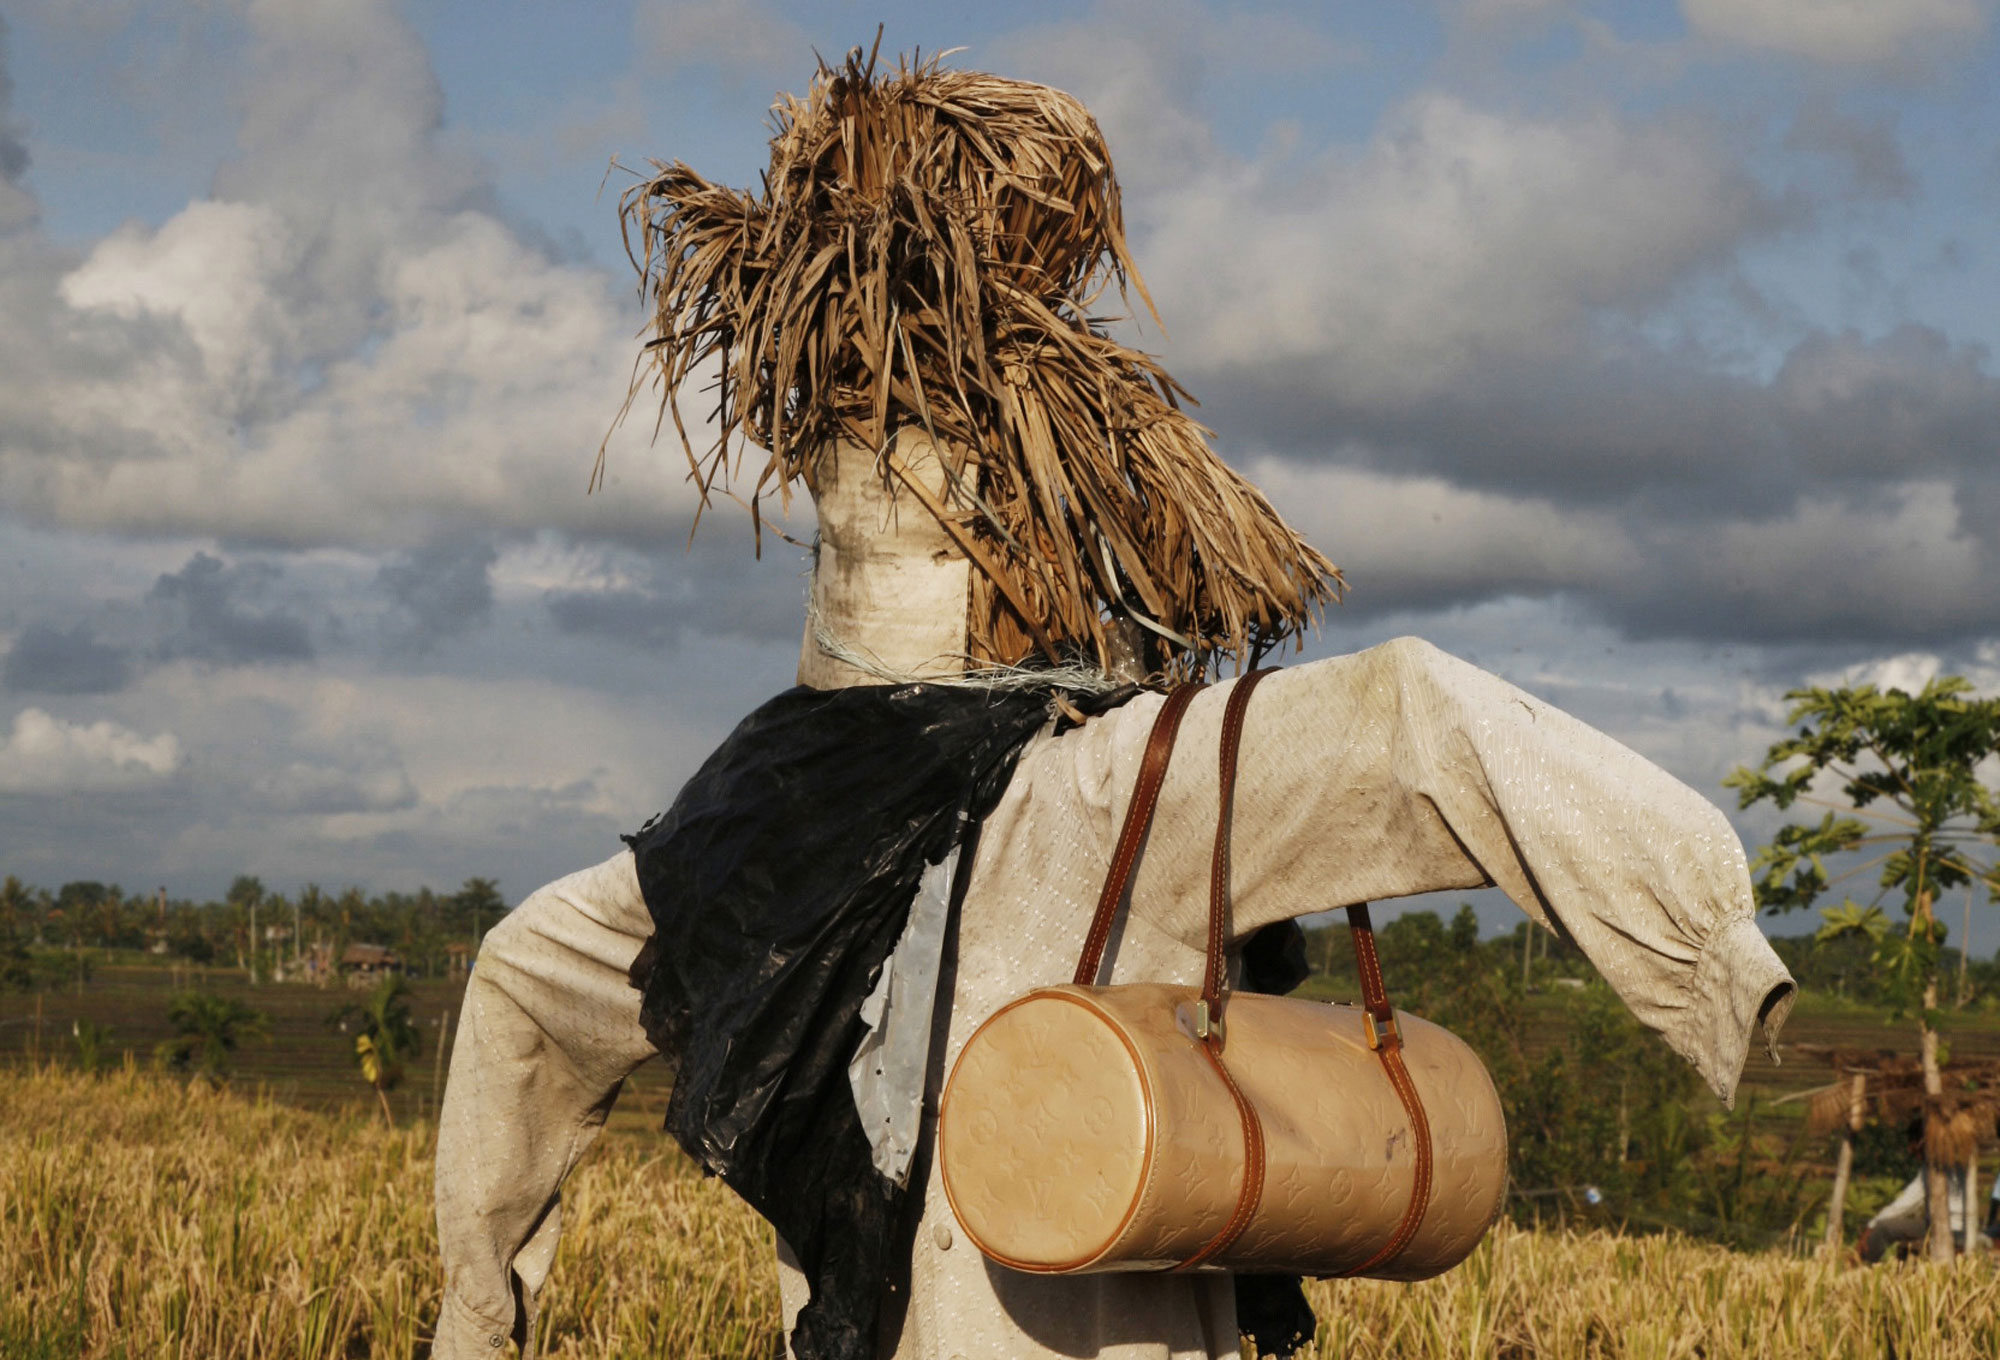 Scarecrow in Bali with Louis Vuitton bag